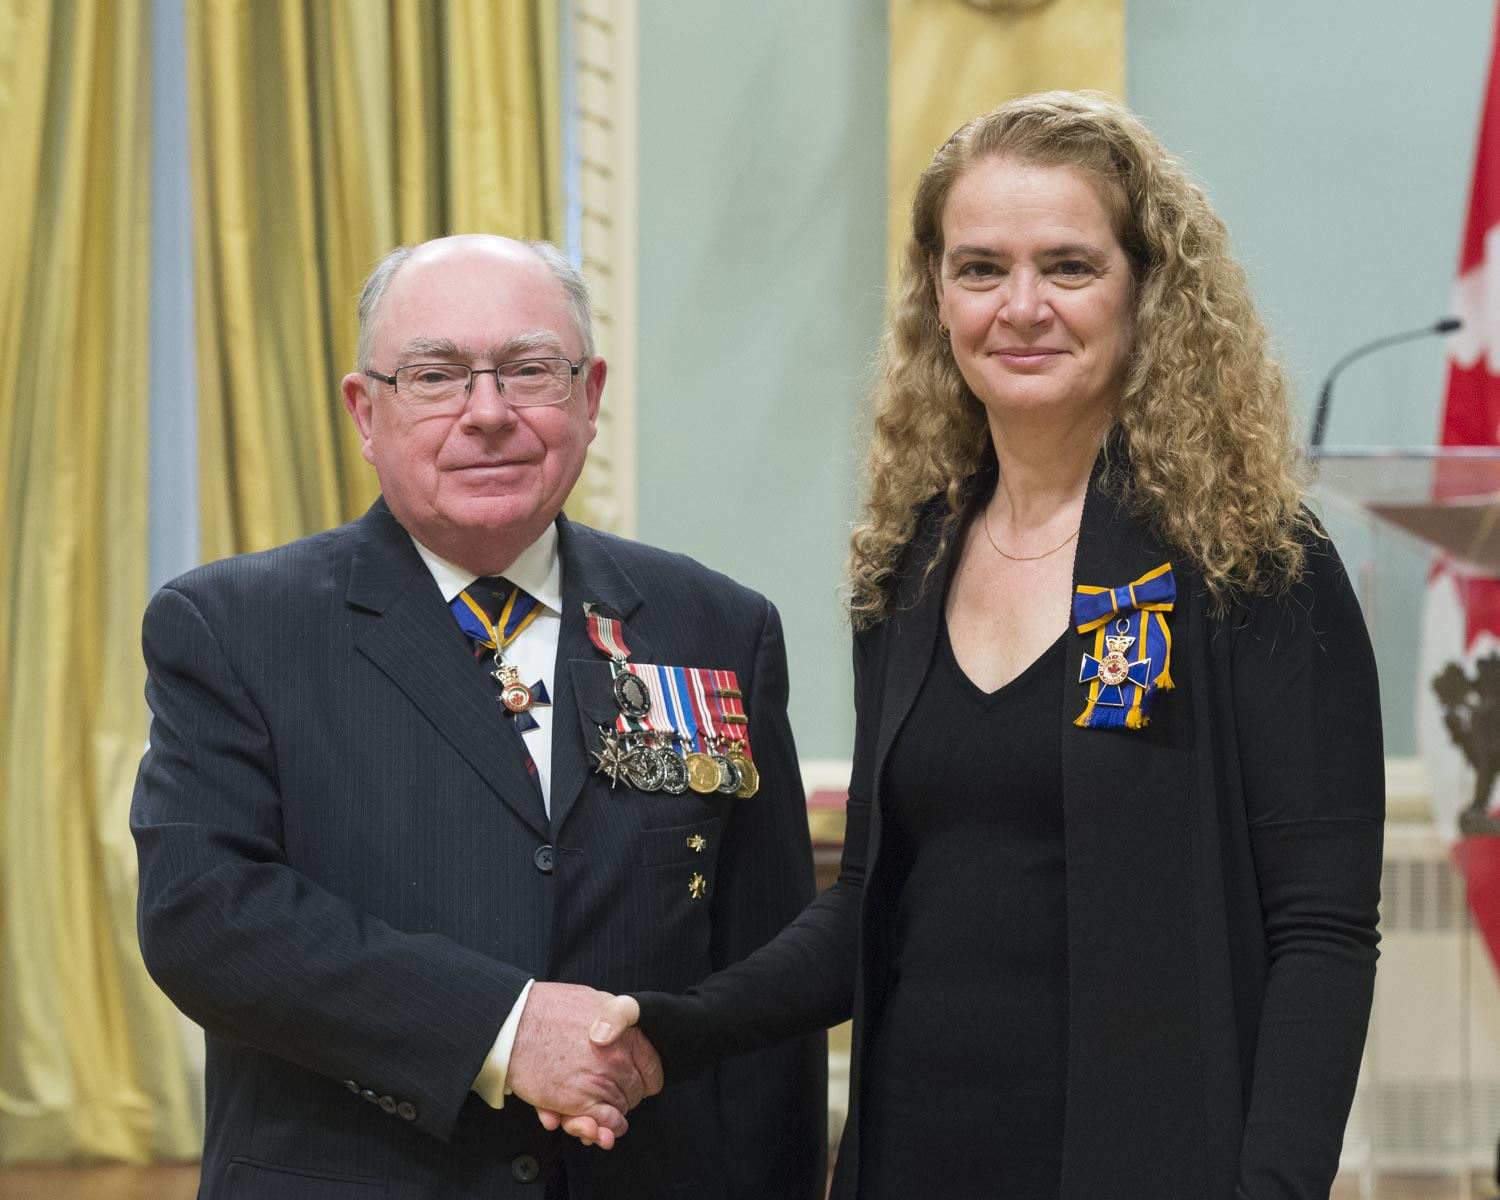 Vice-Admiral Ronald Buck (Retired) received the Sovereign's Medal for Volunteers. After retiring from a 39-year career in the Royal Canadian Navy, Ron Buck joined the Navy League of Canada in 2009 and committed himself to improving its governance and youth programs. In 2013, he joined the board of directors of the Perley and Rideau Veterans' Health Centre to support veterans in the community and to address the unique health care issues of seniors.